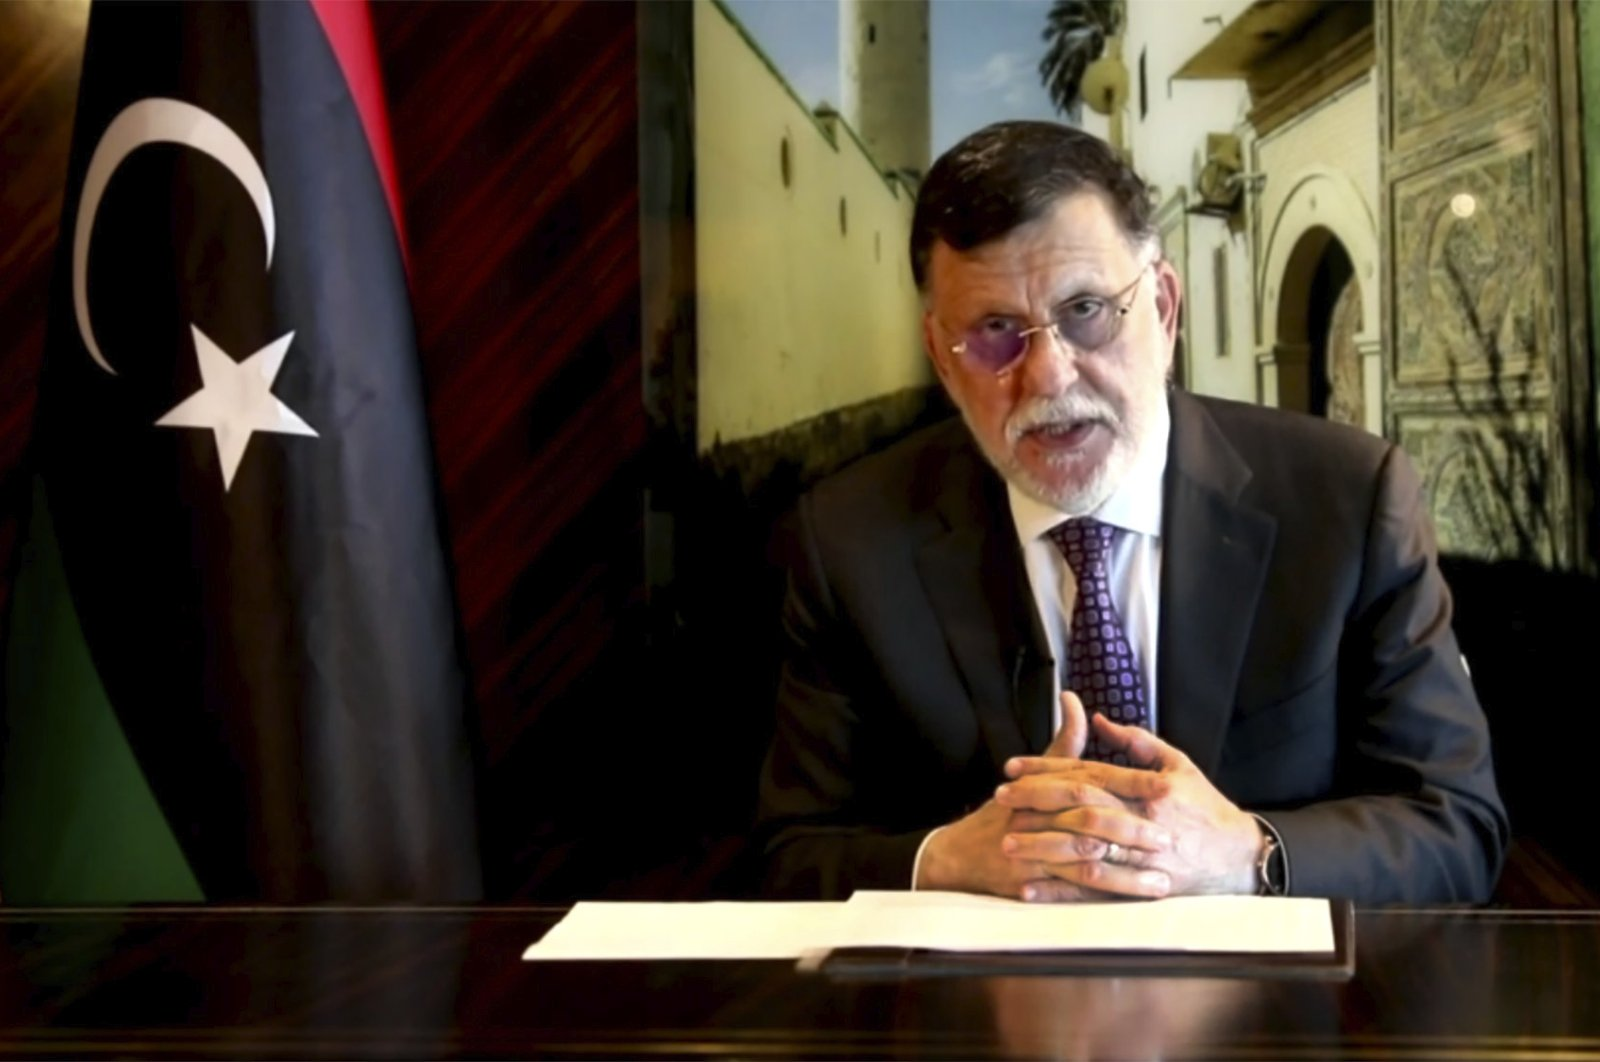 Libya's Prime Minister Fayez Serraj speaks in a pre-recorded message which was played during the 75th session of the United Nations General Assembly, Sept. 24, 2020. (AP Photo)